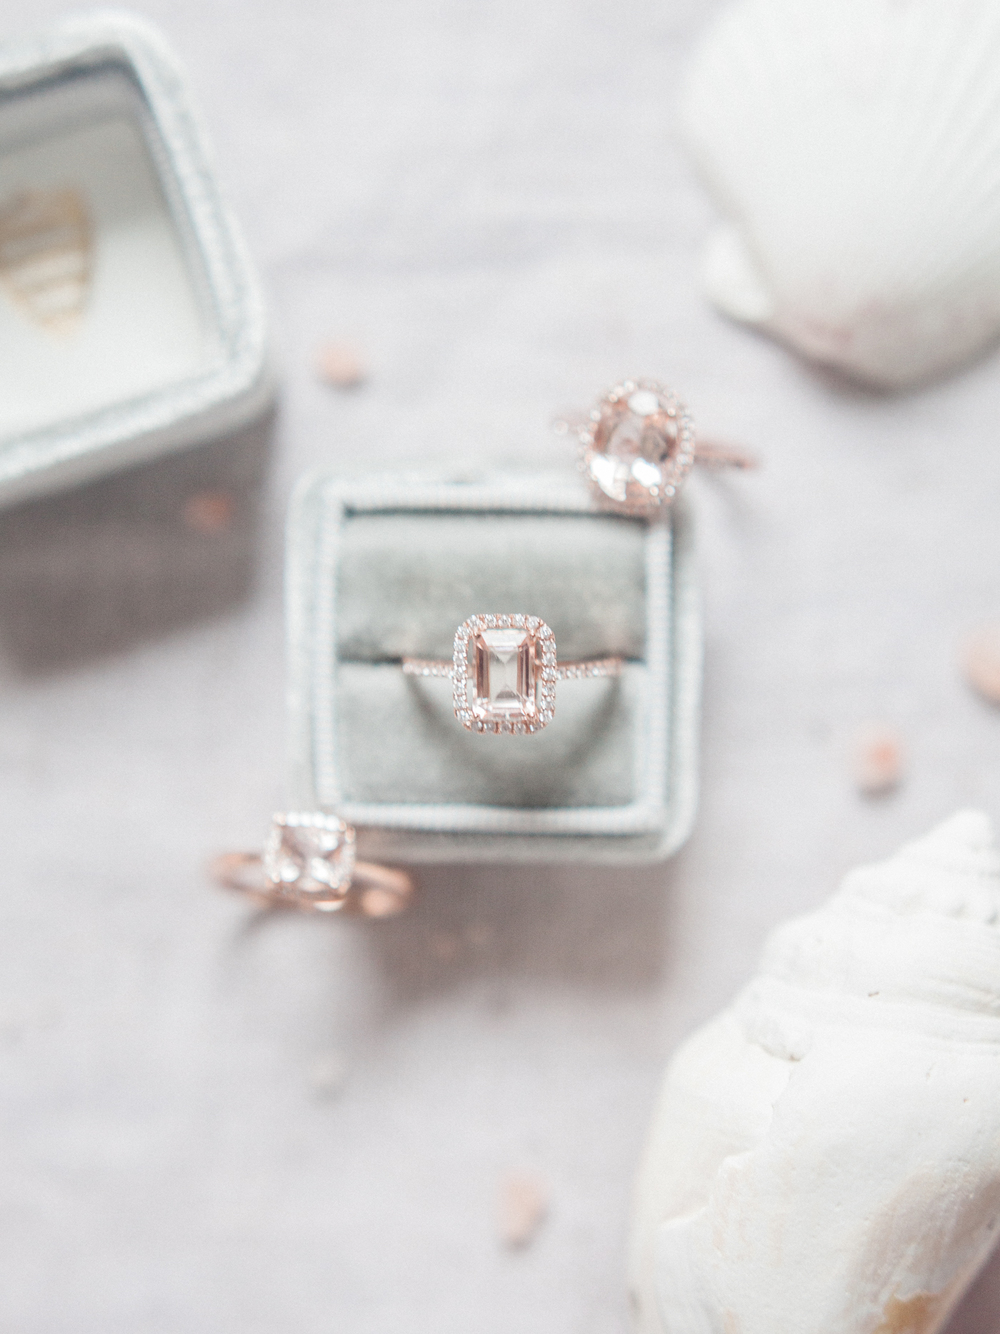 WEDDING WEDNESDAY | ROSE GOLD X MORGANITE ENGAGEMENT RINGS BY NAN LEE // PHOTOS BY: DANIELLE M. SABOL